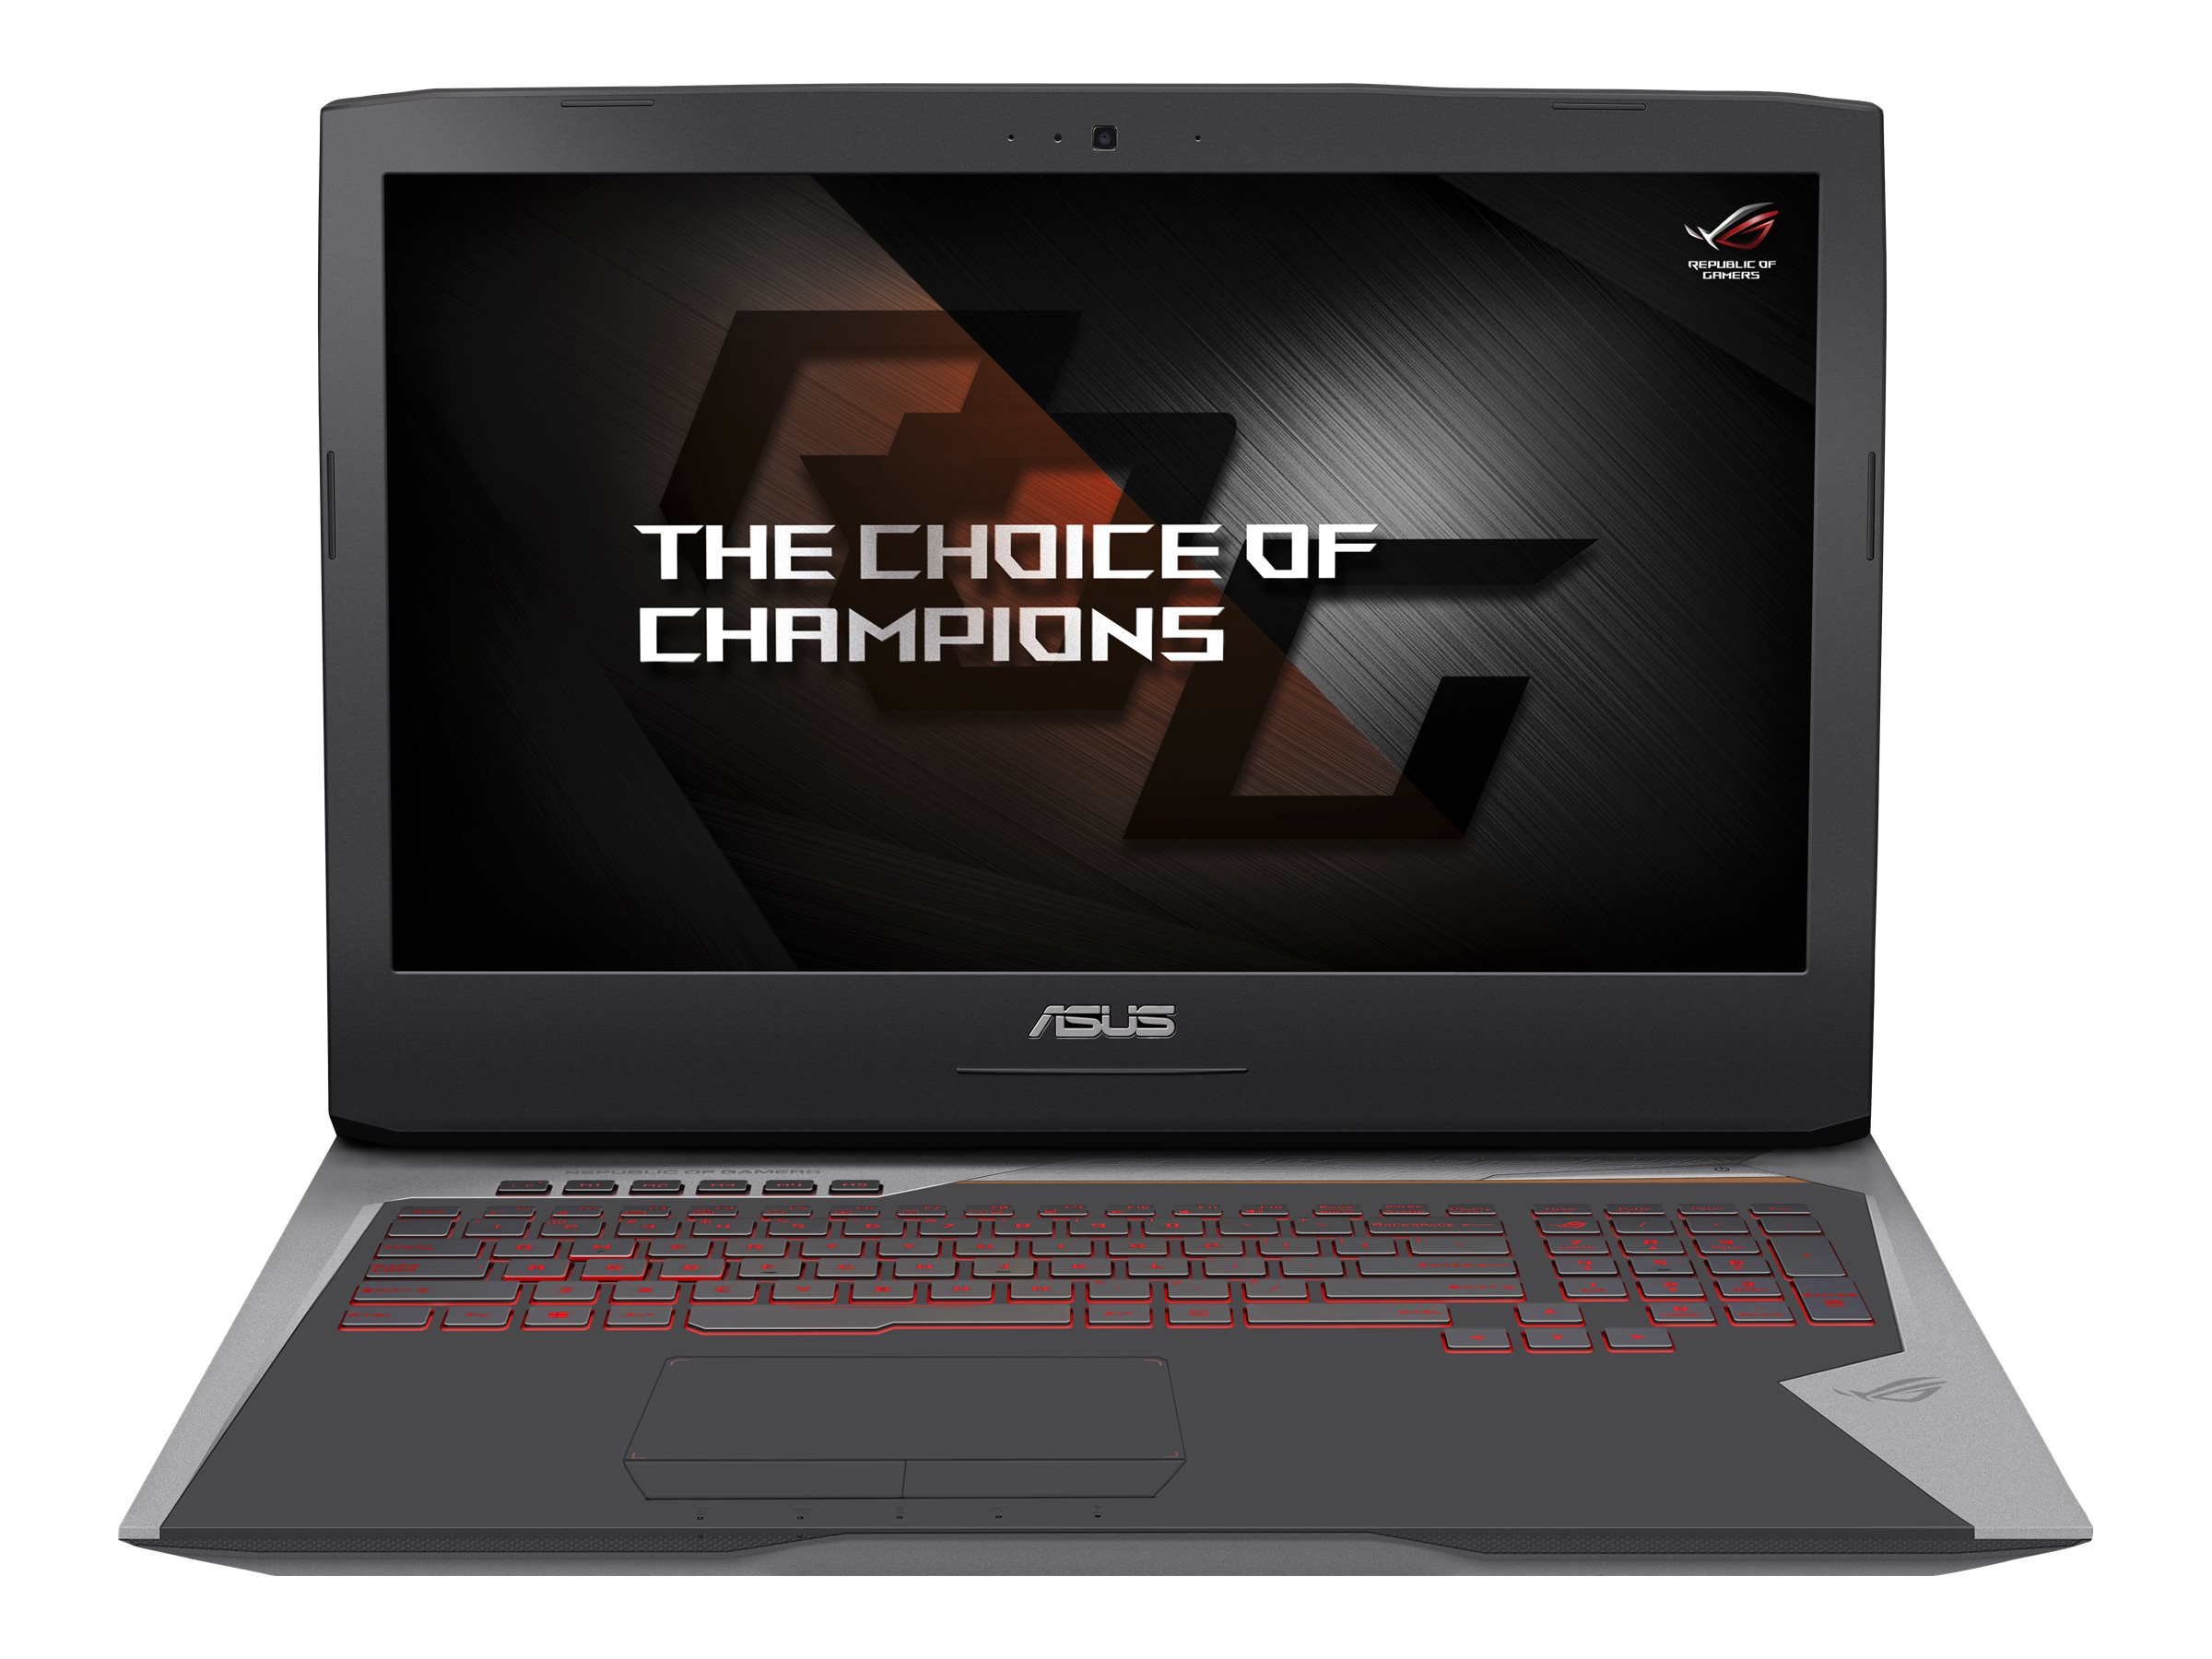 Asus G752VS-XB78K Core i7-6820 64GB 512GB SSD DVD-RW 17.3 W10P, G752VSXB78KOCEDITION